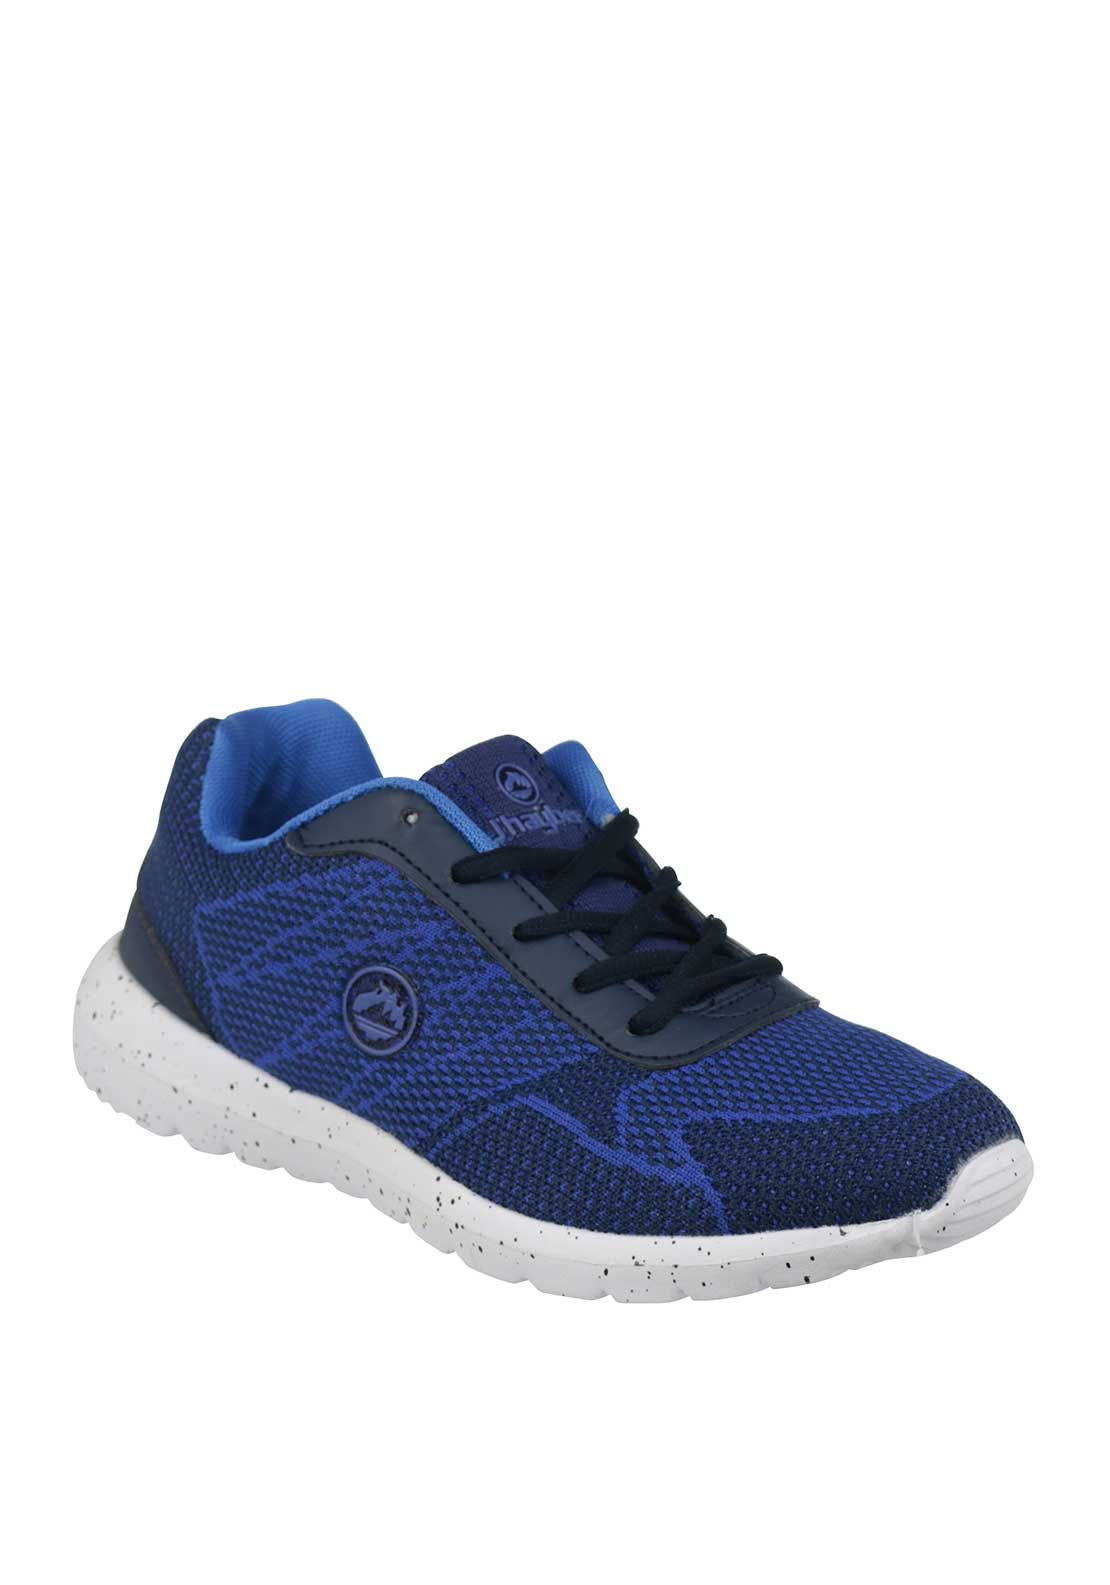 J'hayber Womens Knit Runners, Blue